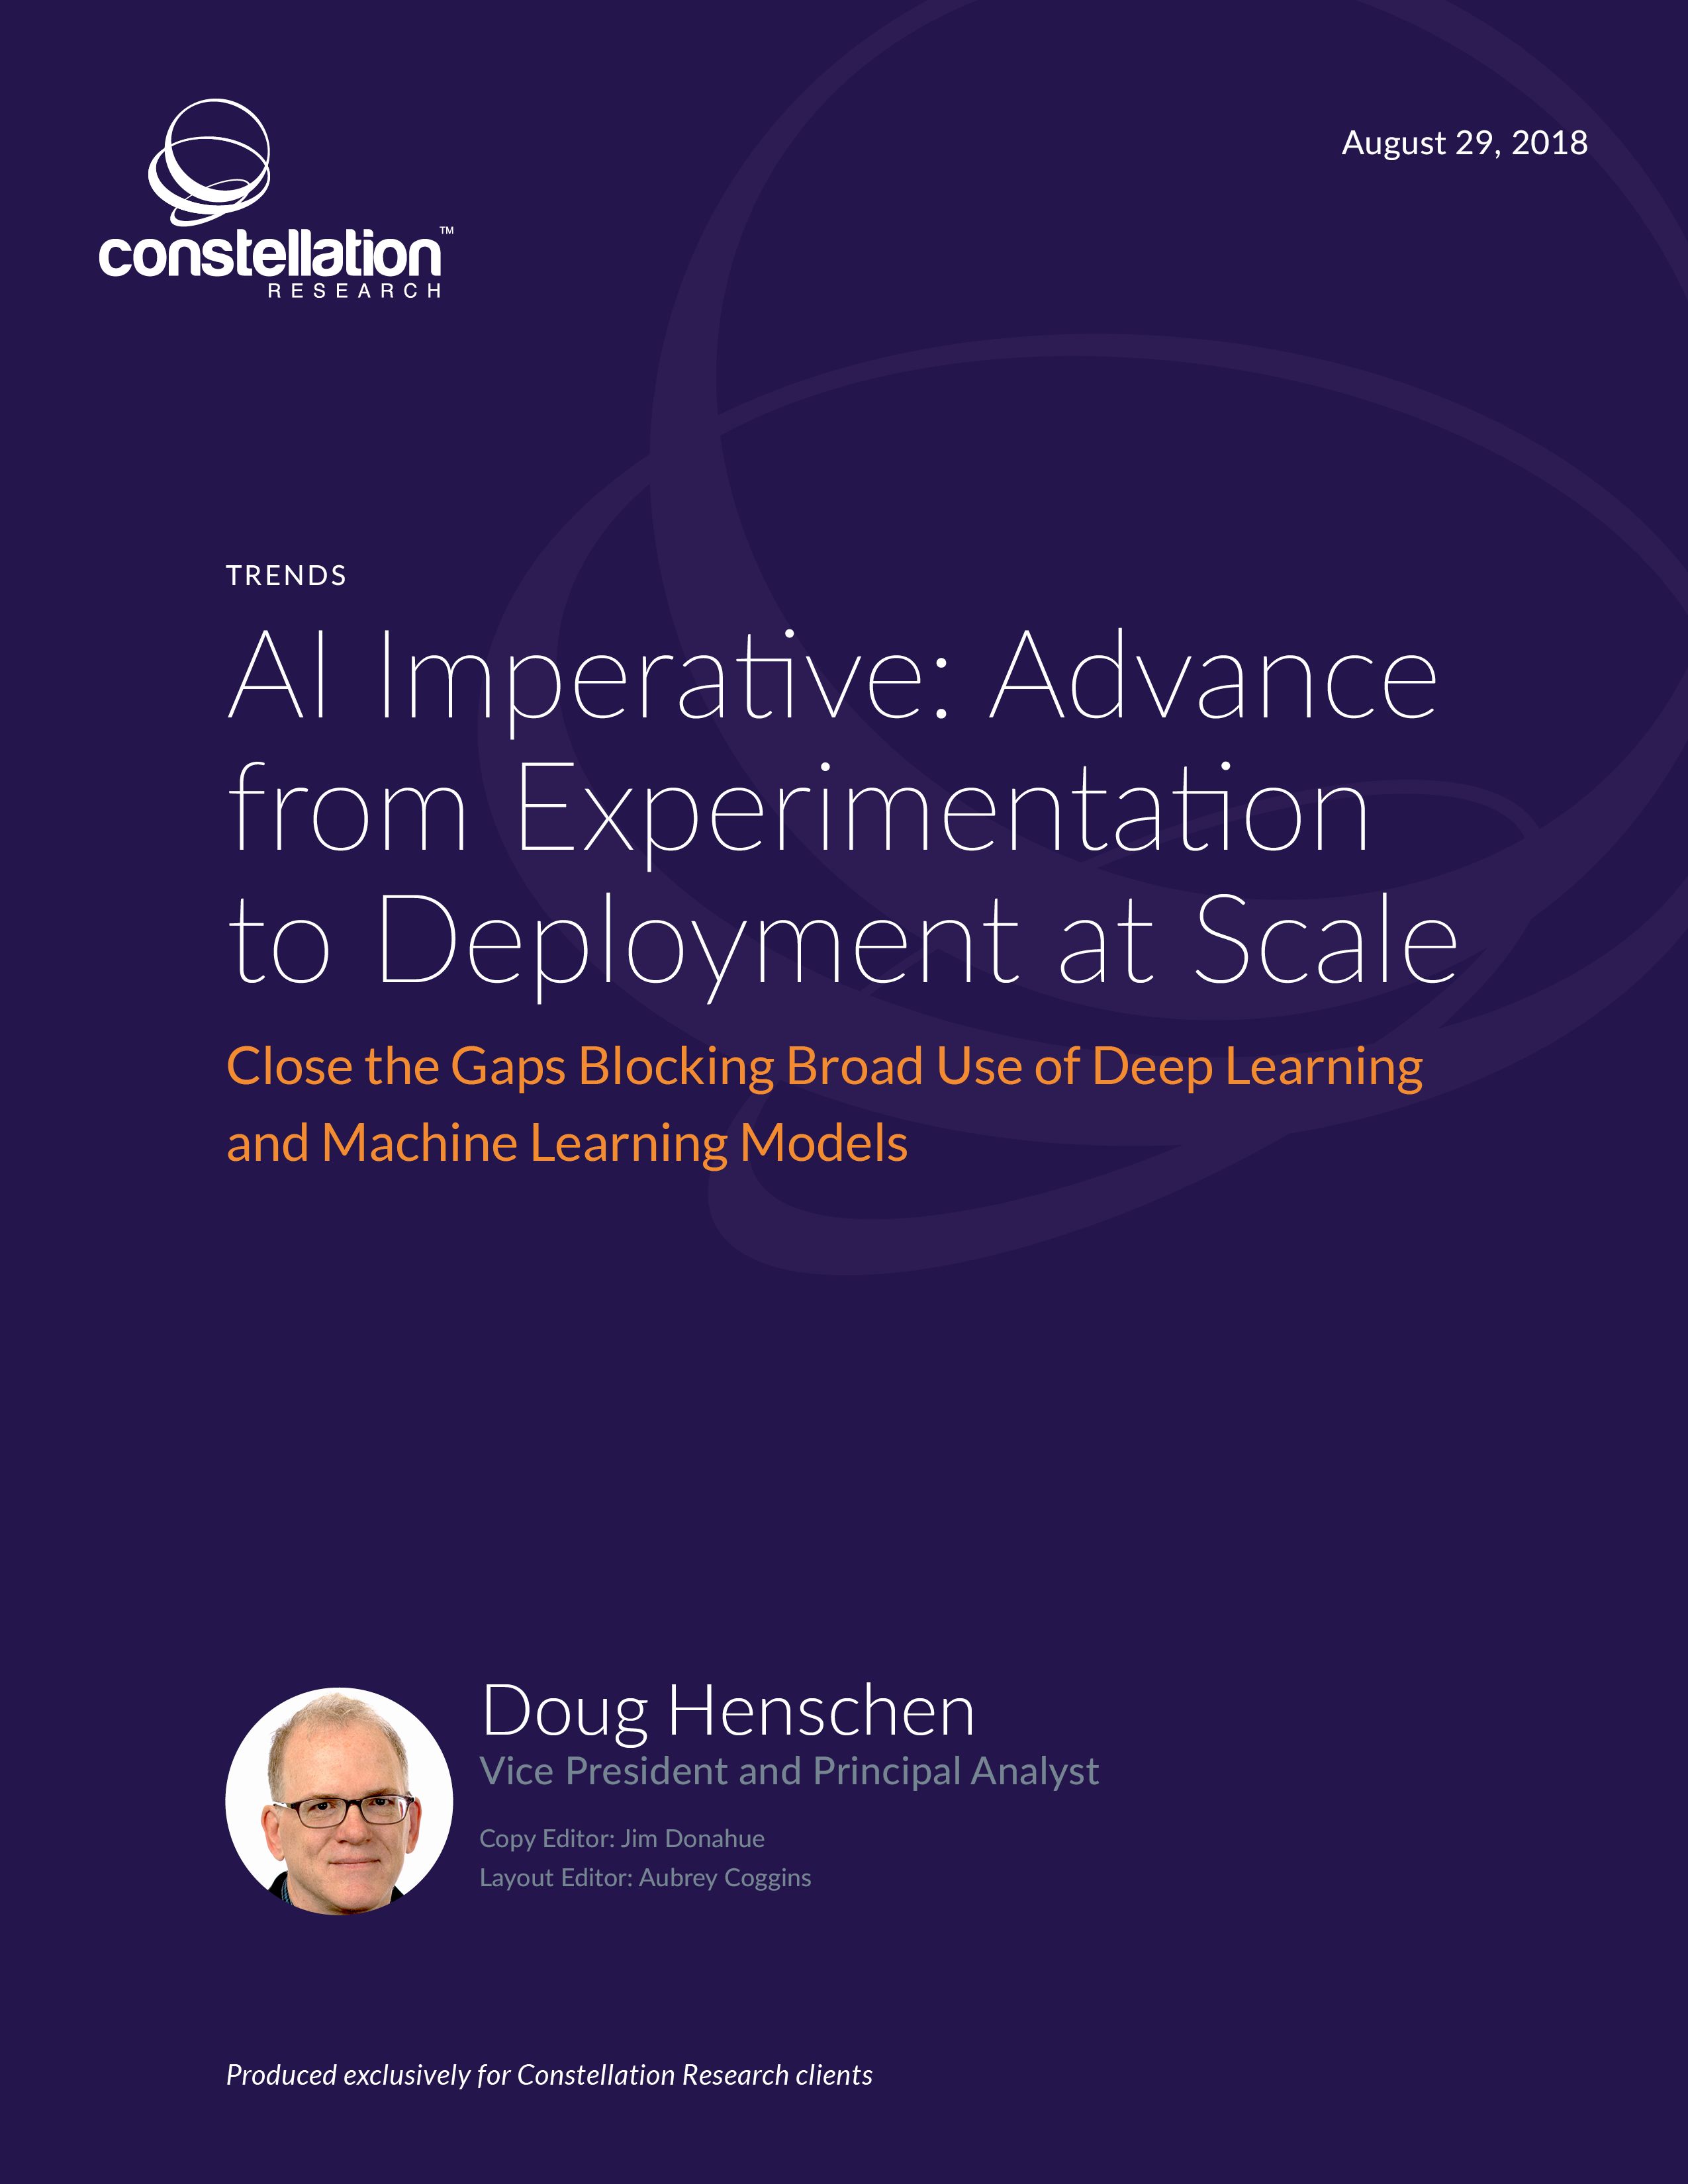 AI Imperative: Advance from Experimentation to Deployment at Scale